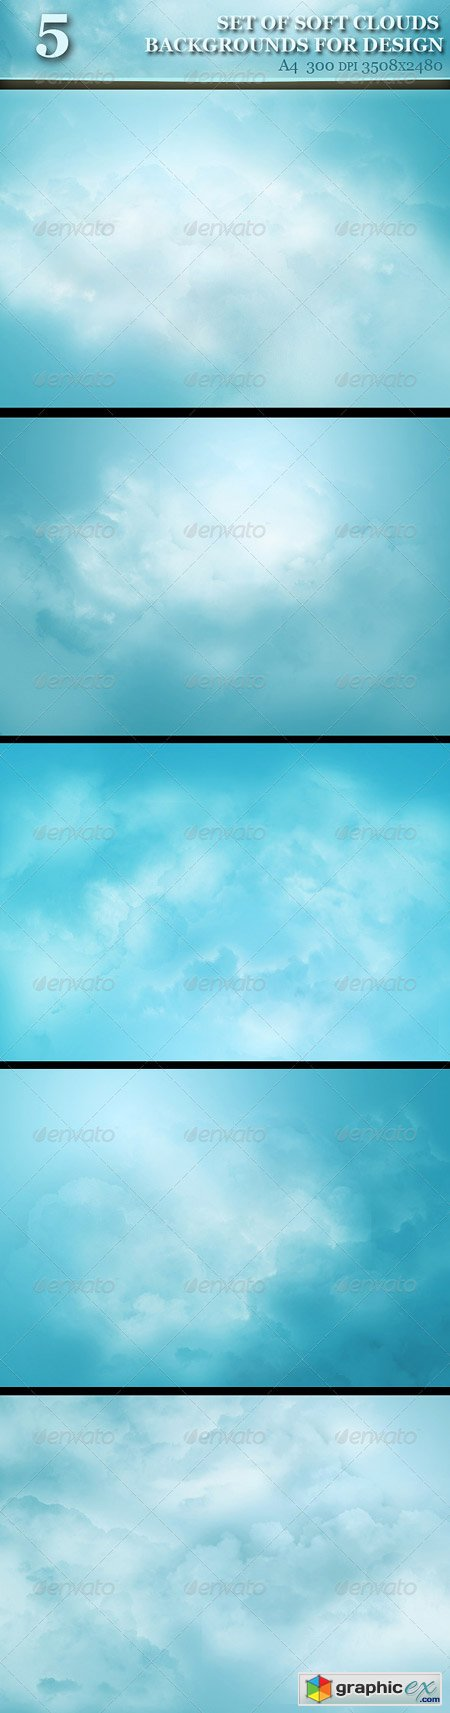 Set of Soft Clouds Backgrounds for Design